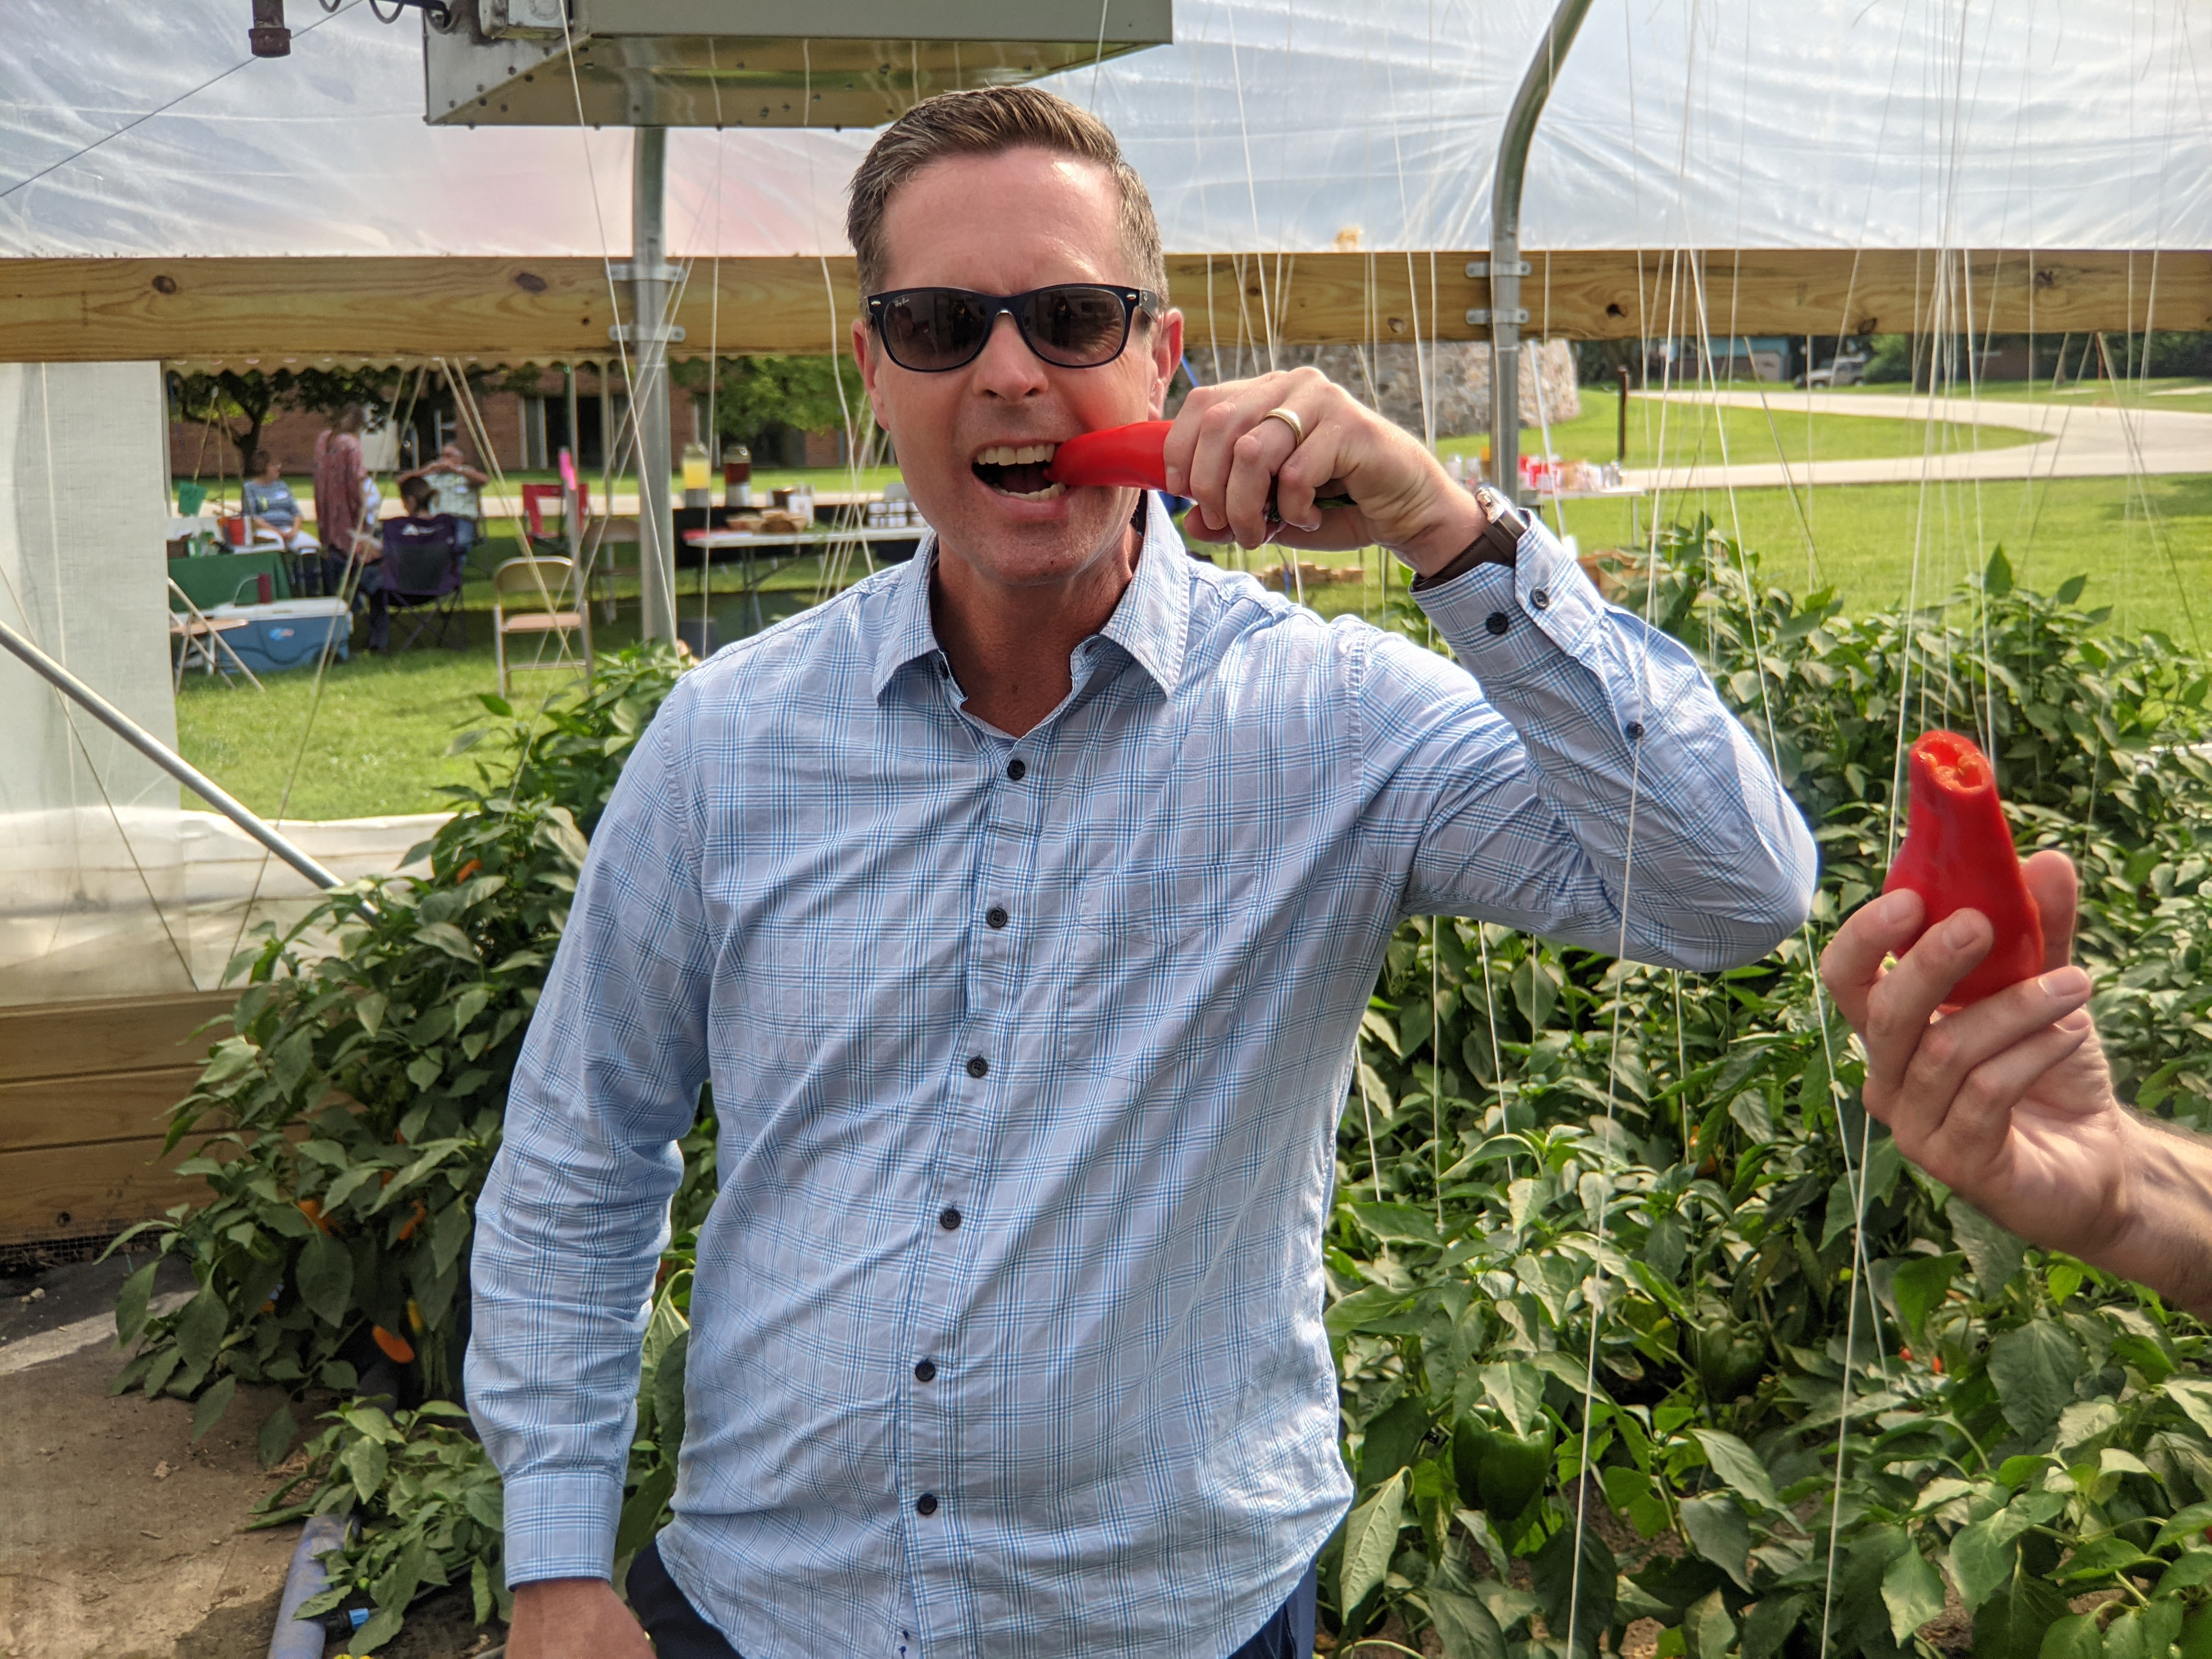 Congressman Rep. Rodney Davis take a big bit out of a red sweet pepper while inside the hoop house growing hundreds more! In sunglasses and smiling at the camera as he goes in for another bite!